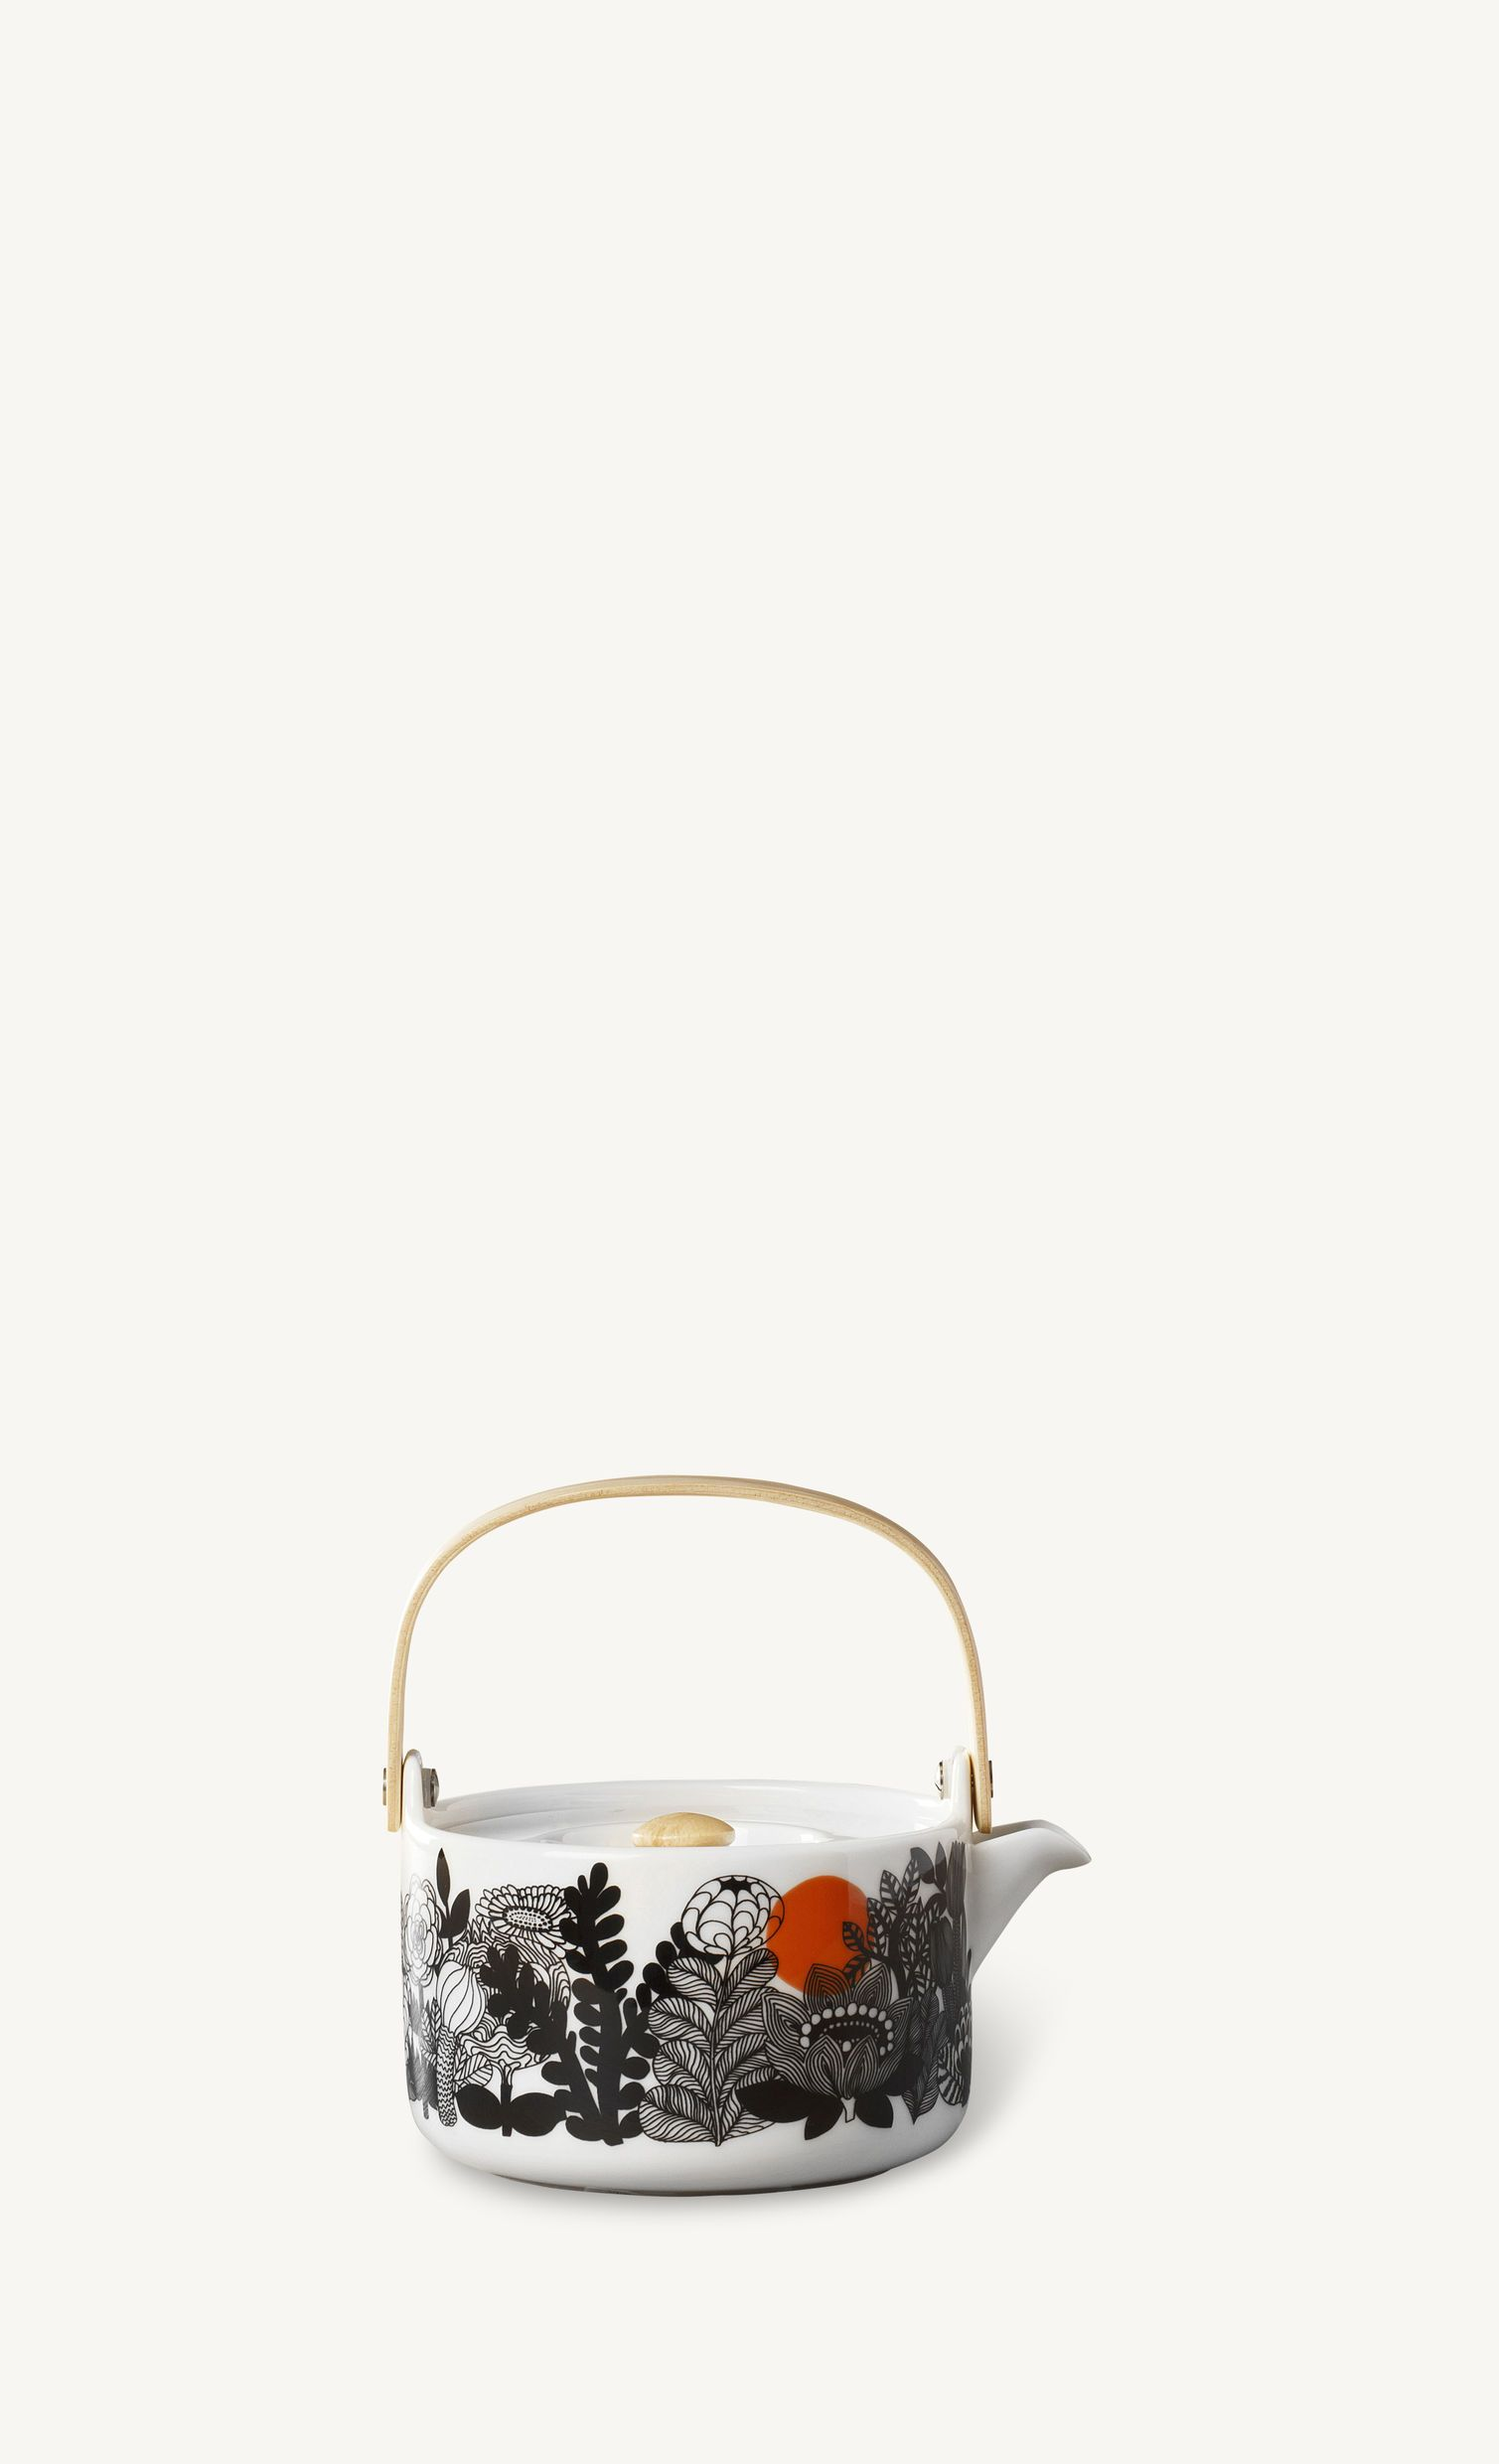 Marimekko, Siirtolapuutarha Teapot, White/Black/Orange- Placewares